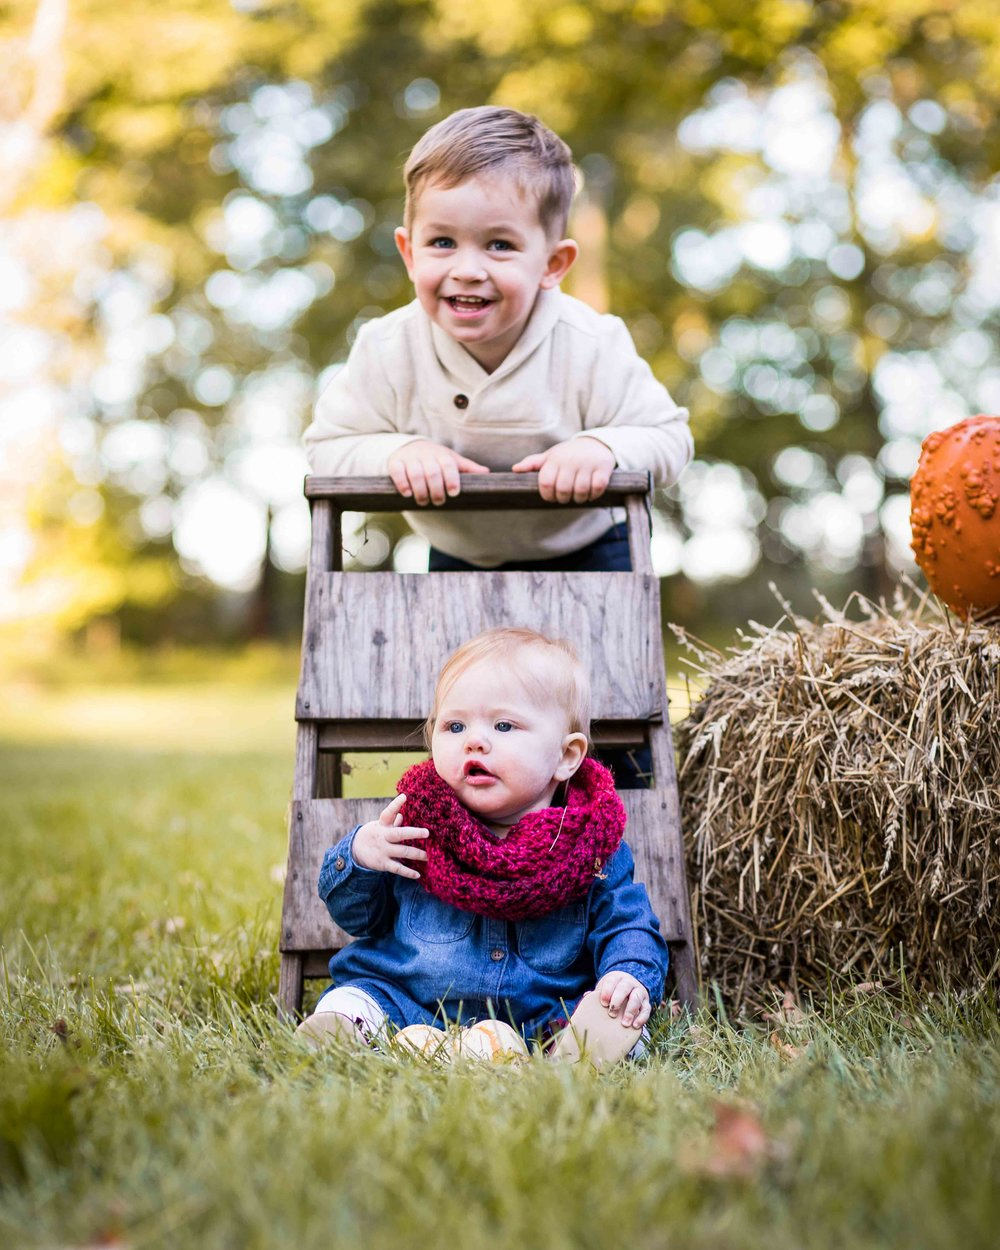 Siblings posing for a photo with a ladder, hay bales, and a pumpkin